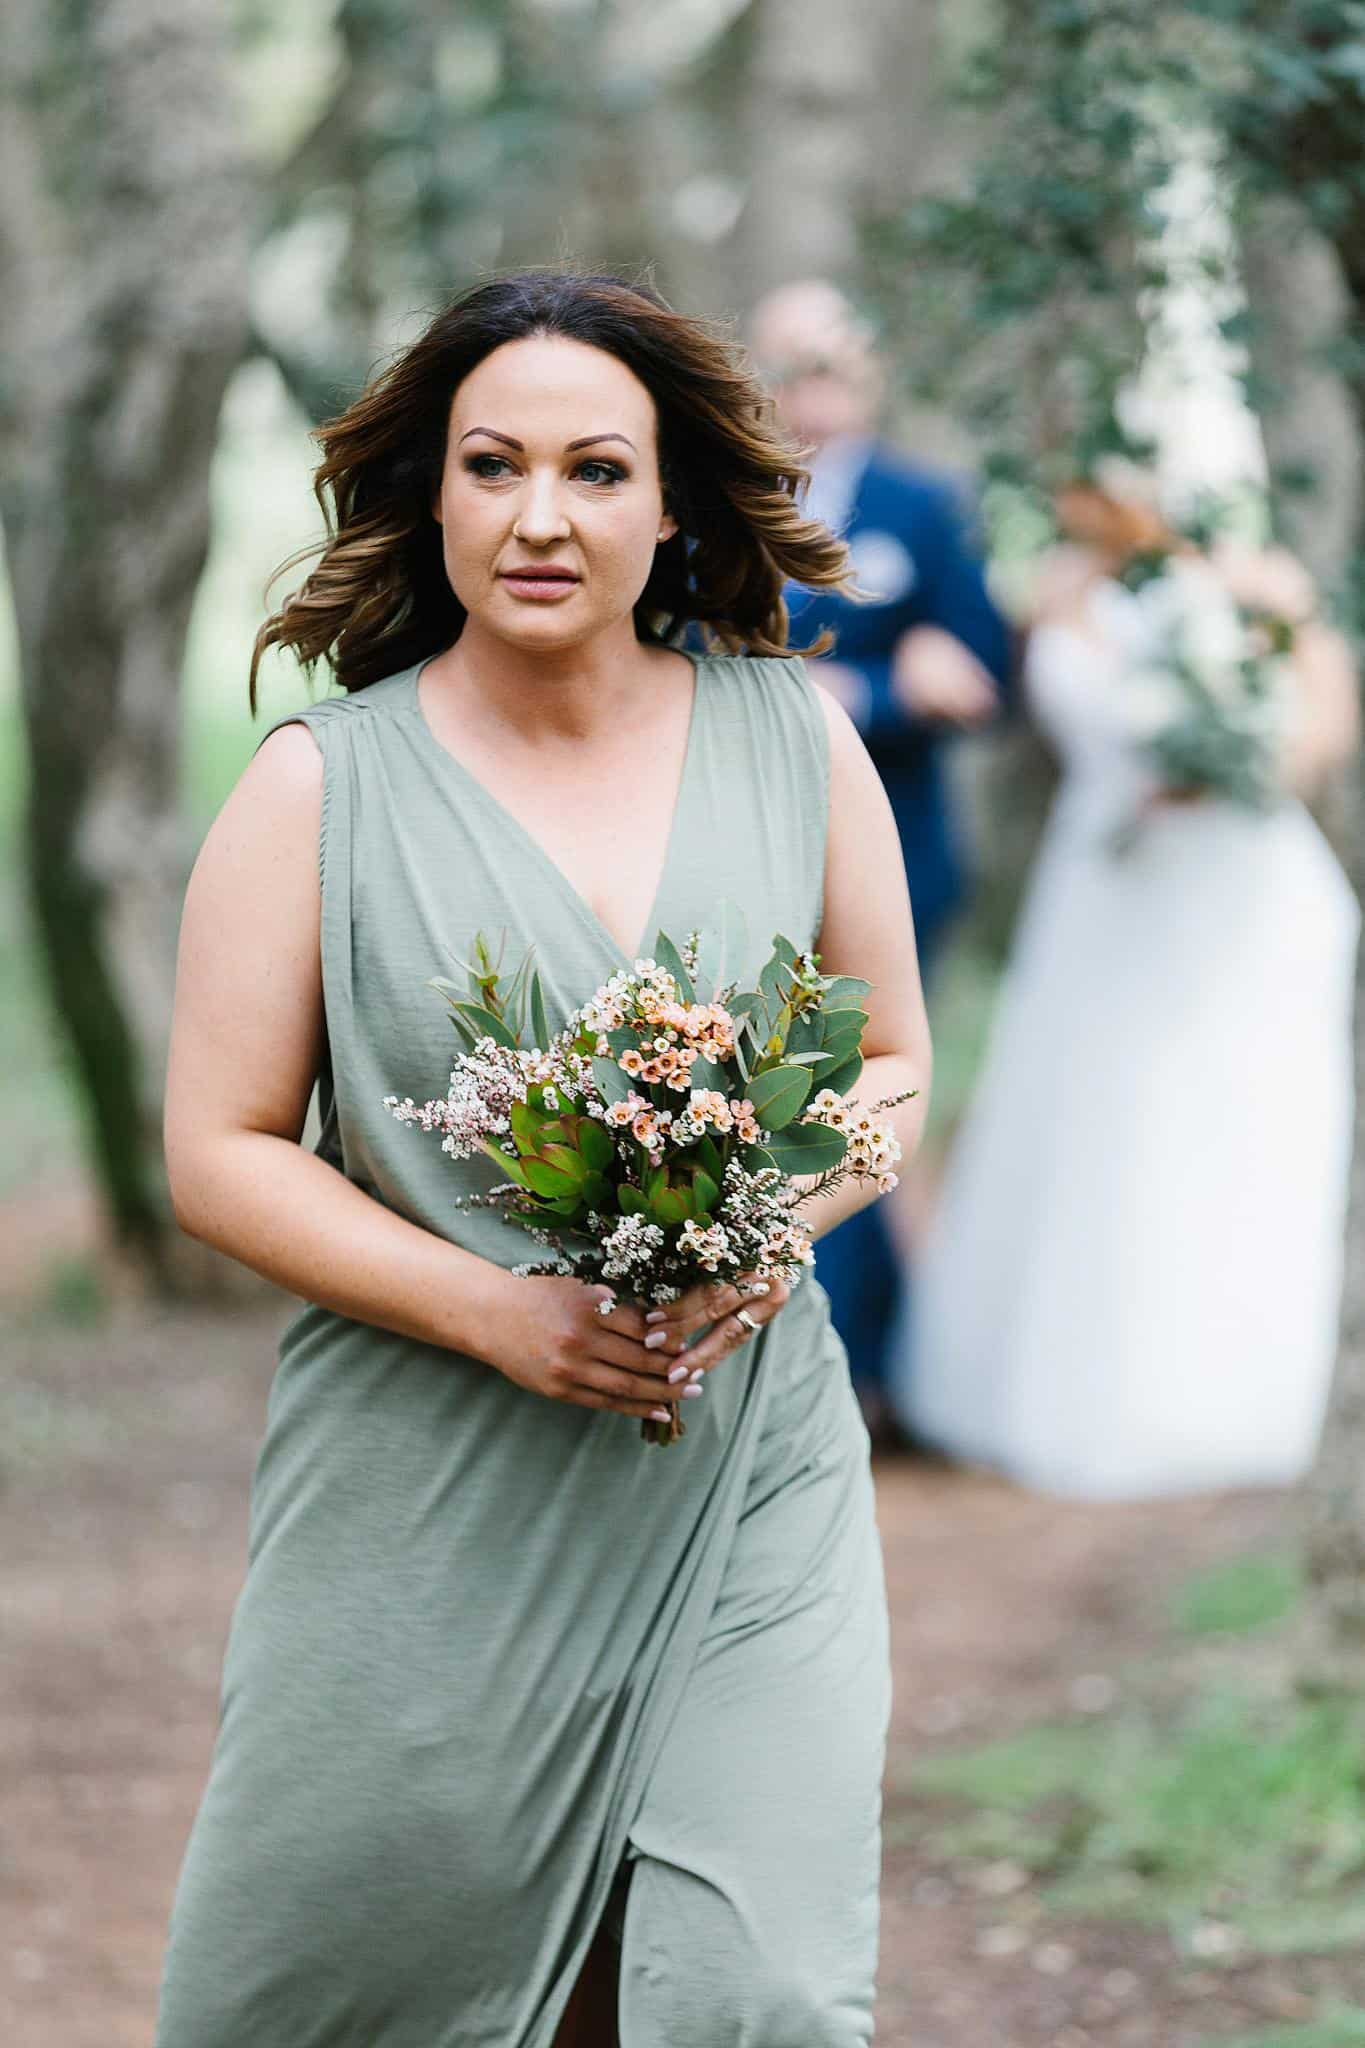 Bridesmaid walks with Father of the Bride and Bride behind